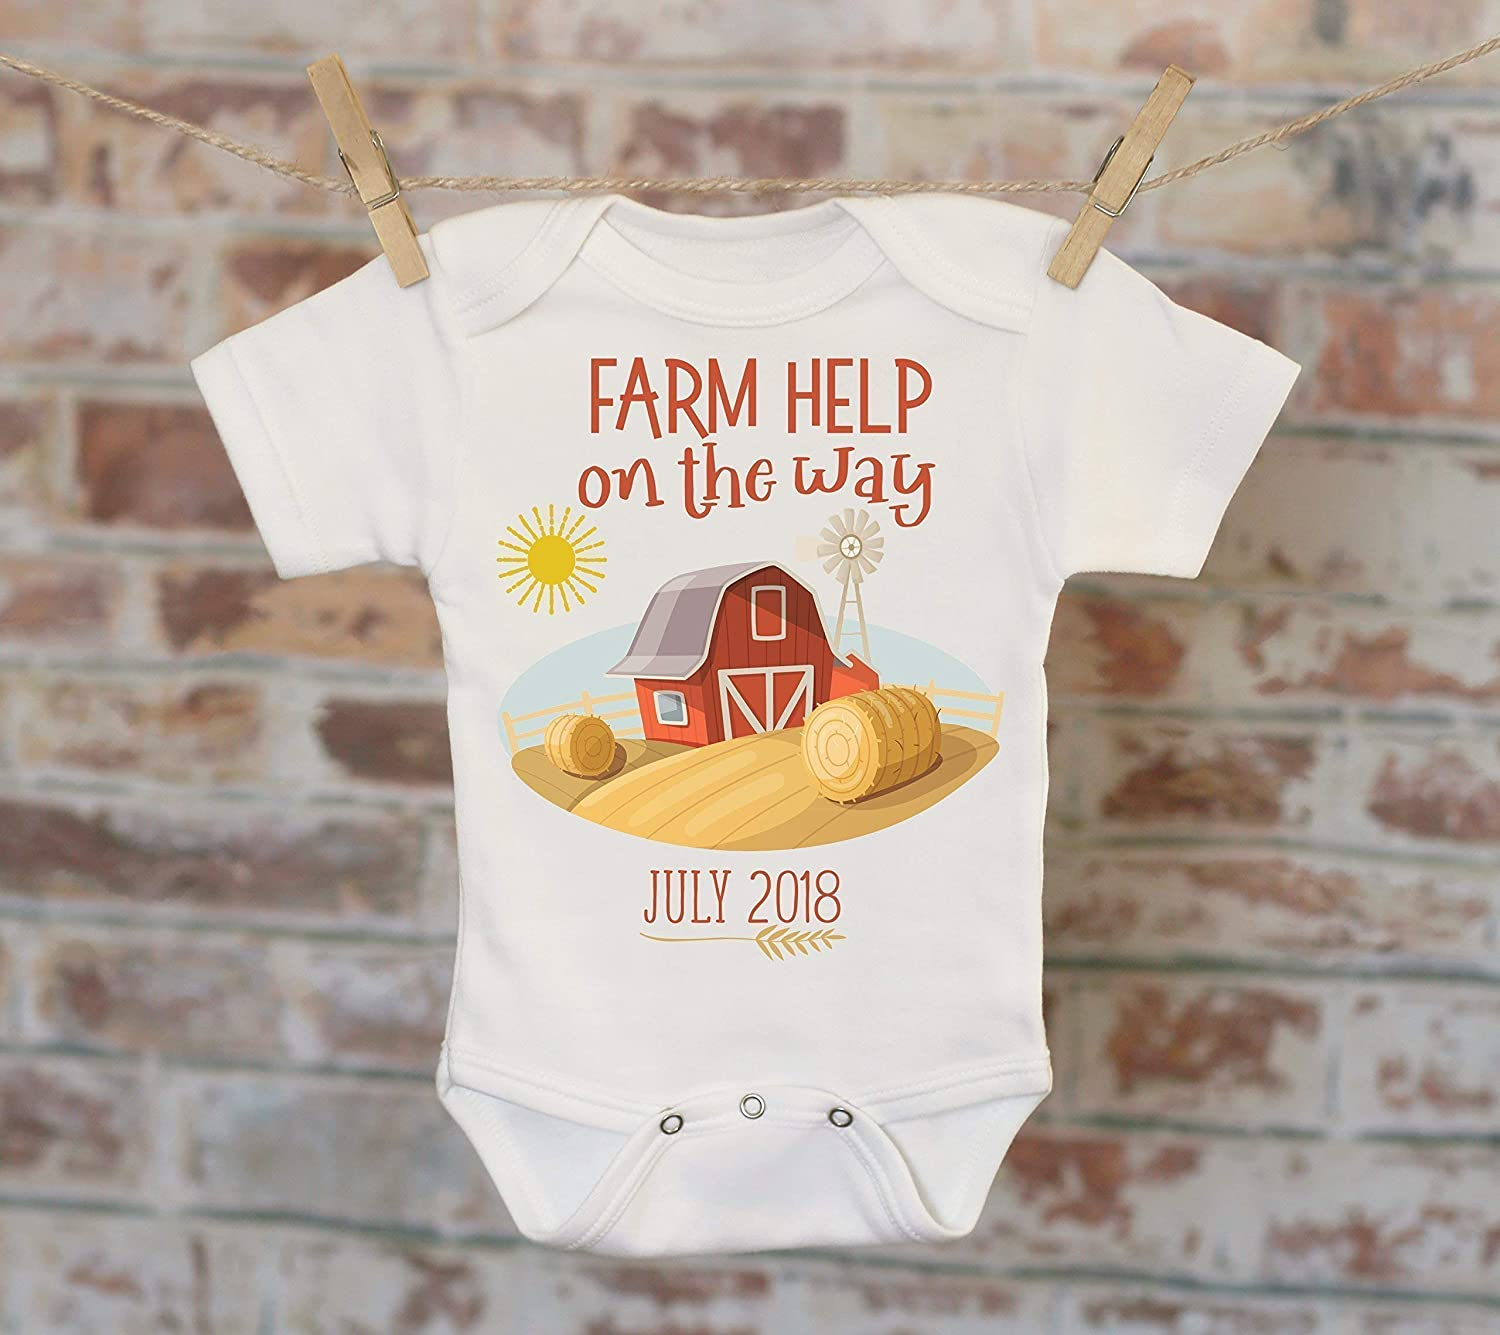 1d9ddbb9cf92a Farm Help On The Way Barn Customized Onesie®, Baby Shower Gift, Customized  Onesie, Pregnancy Announcement, Pregnancy Reveal Onesie